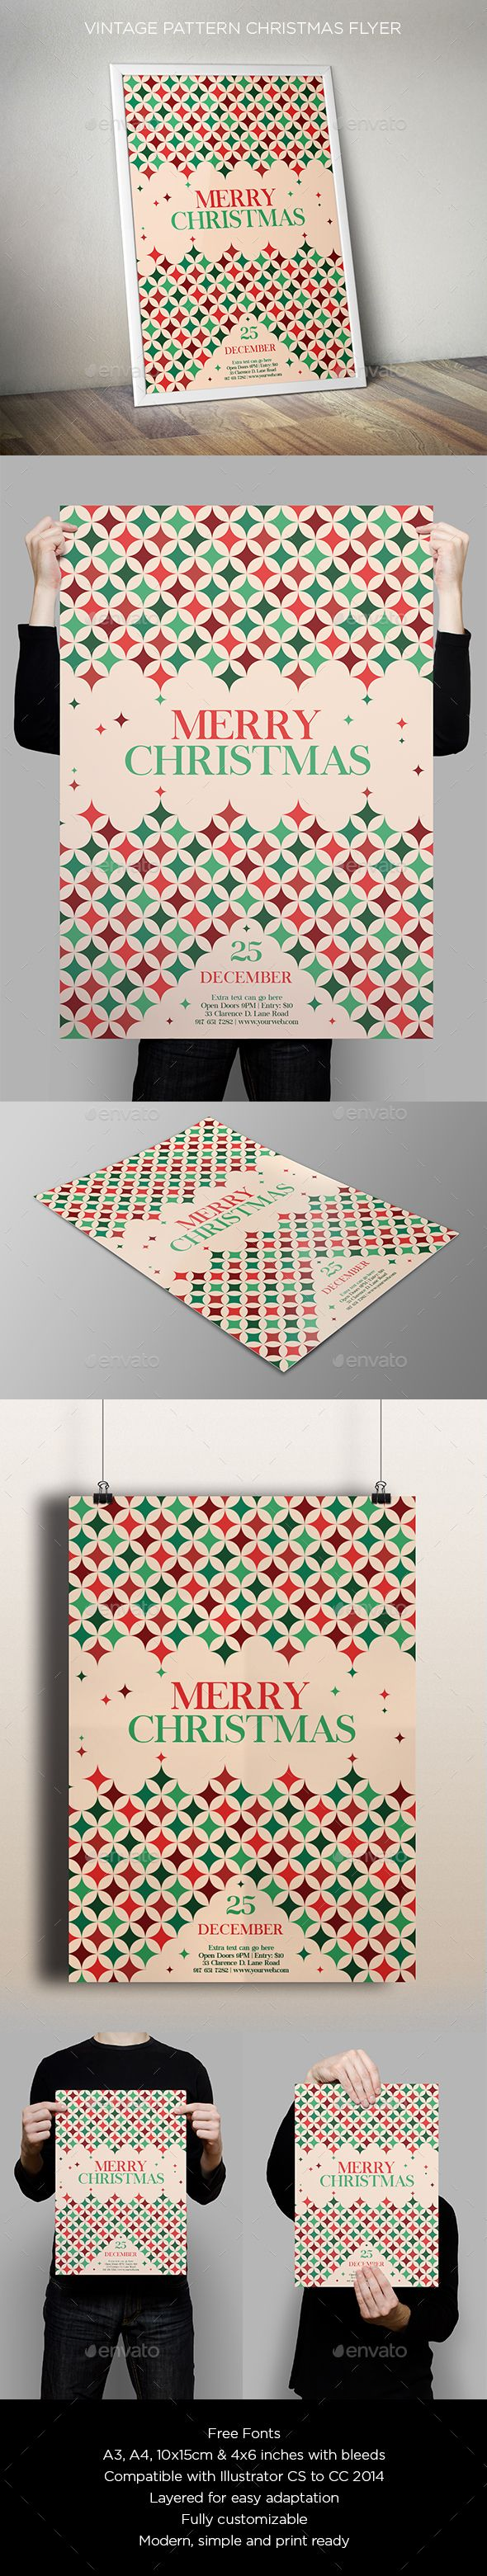 Vintage Pattern Christmas Flyer Template PSD #design Download: http://graphicriver.net/item/vintage-pattern-christmas-flyer/13556520?ref=ksioks